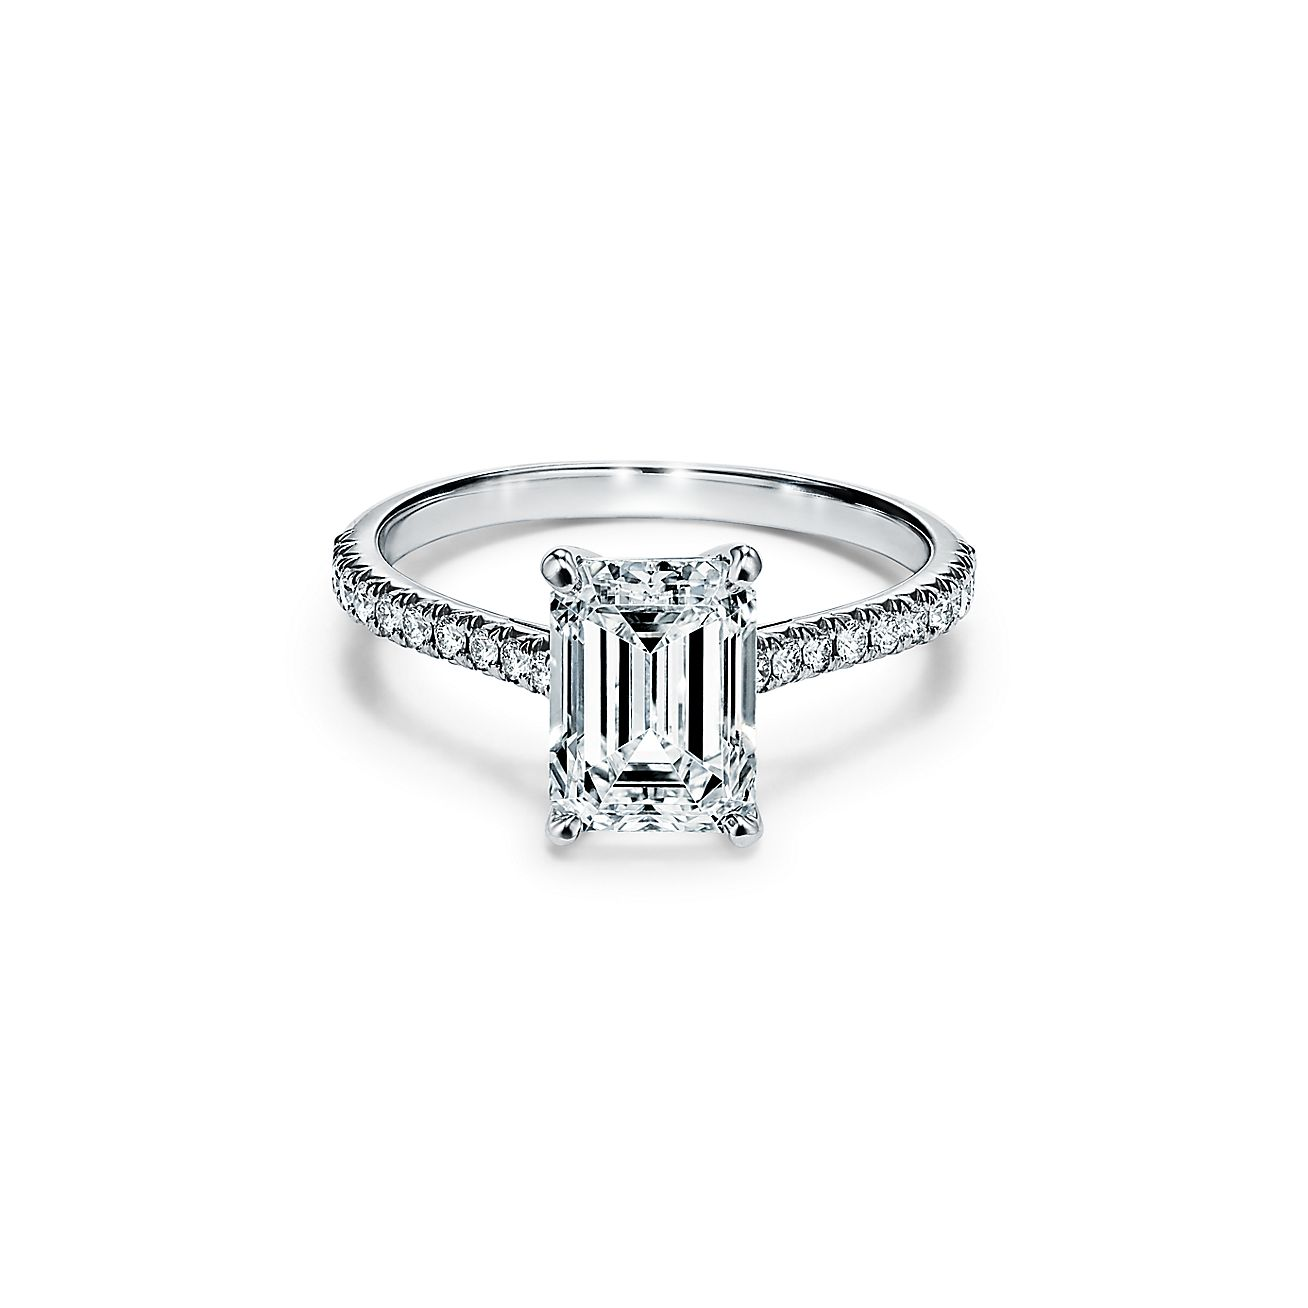 Tiffany Novo Emerald Cut Engagement Ring With A Pave Diamond